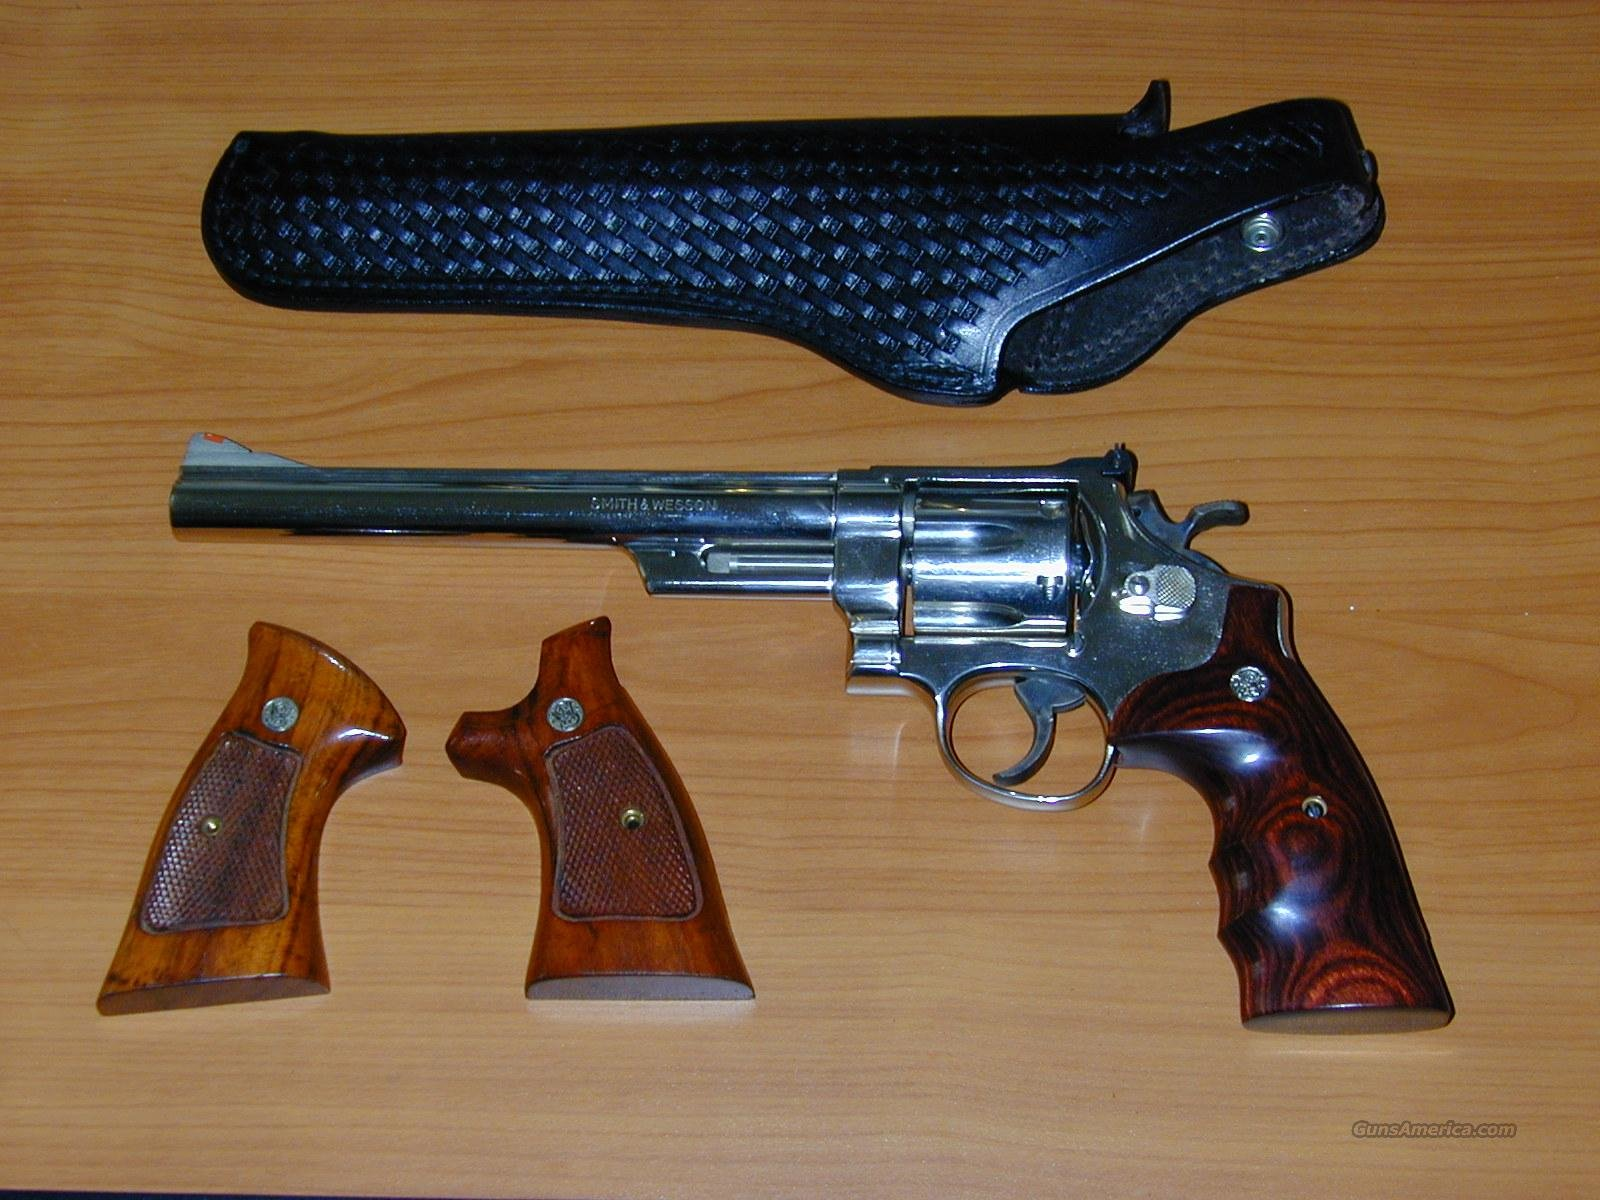 Smith & Wesson Model 25-5 Revolver - Nickel  Guns > Pistols > Smith & Wesson Revolvers > Full Frame Revolver